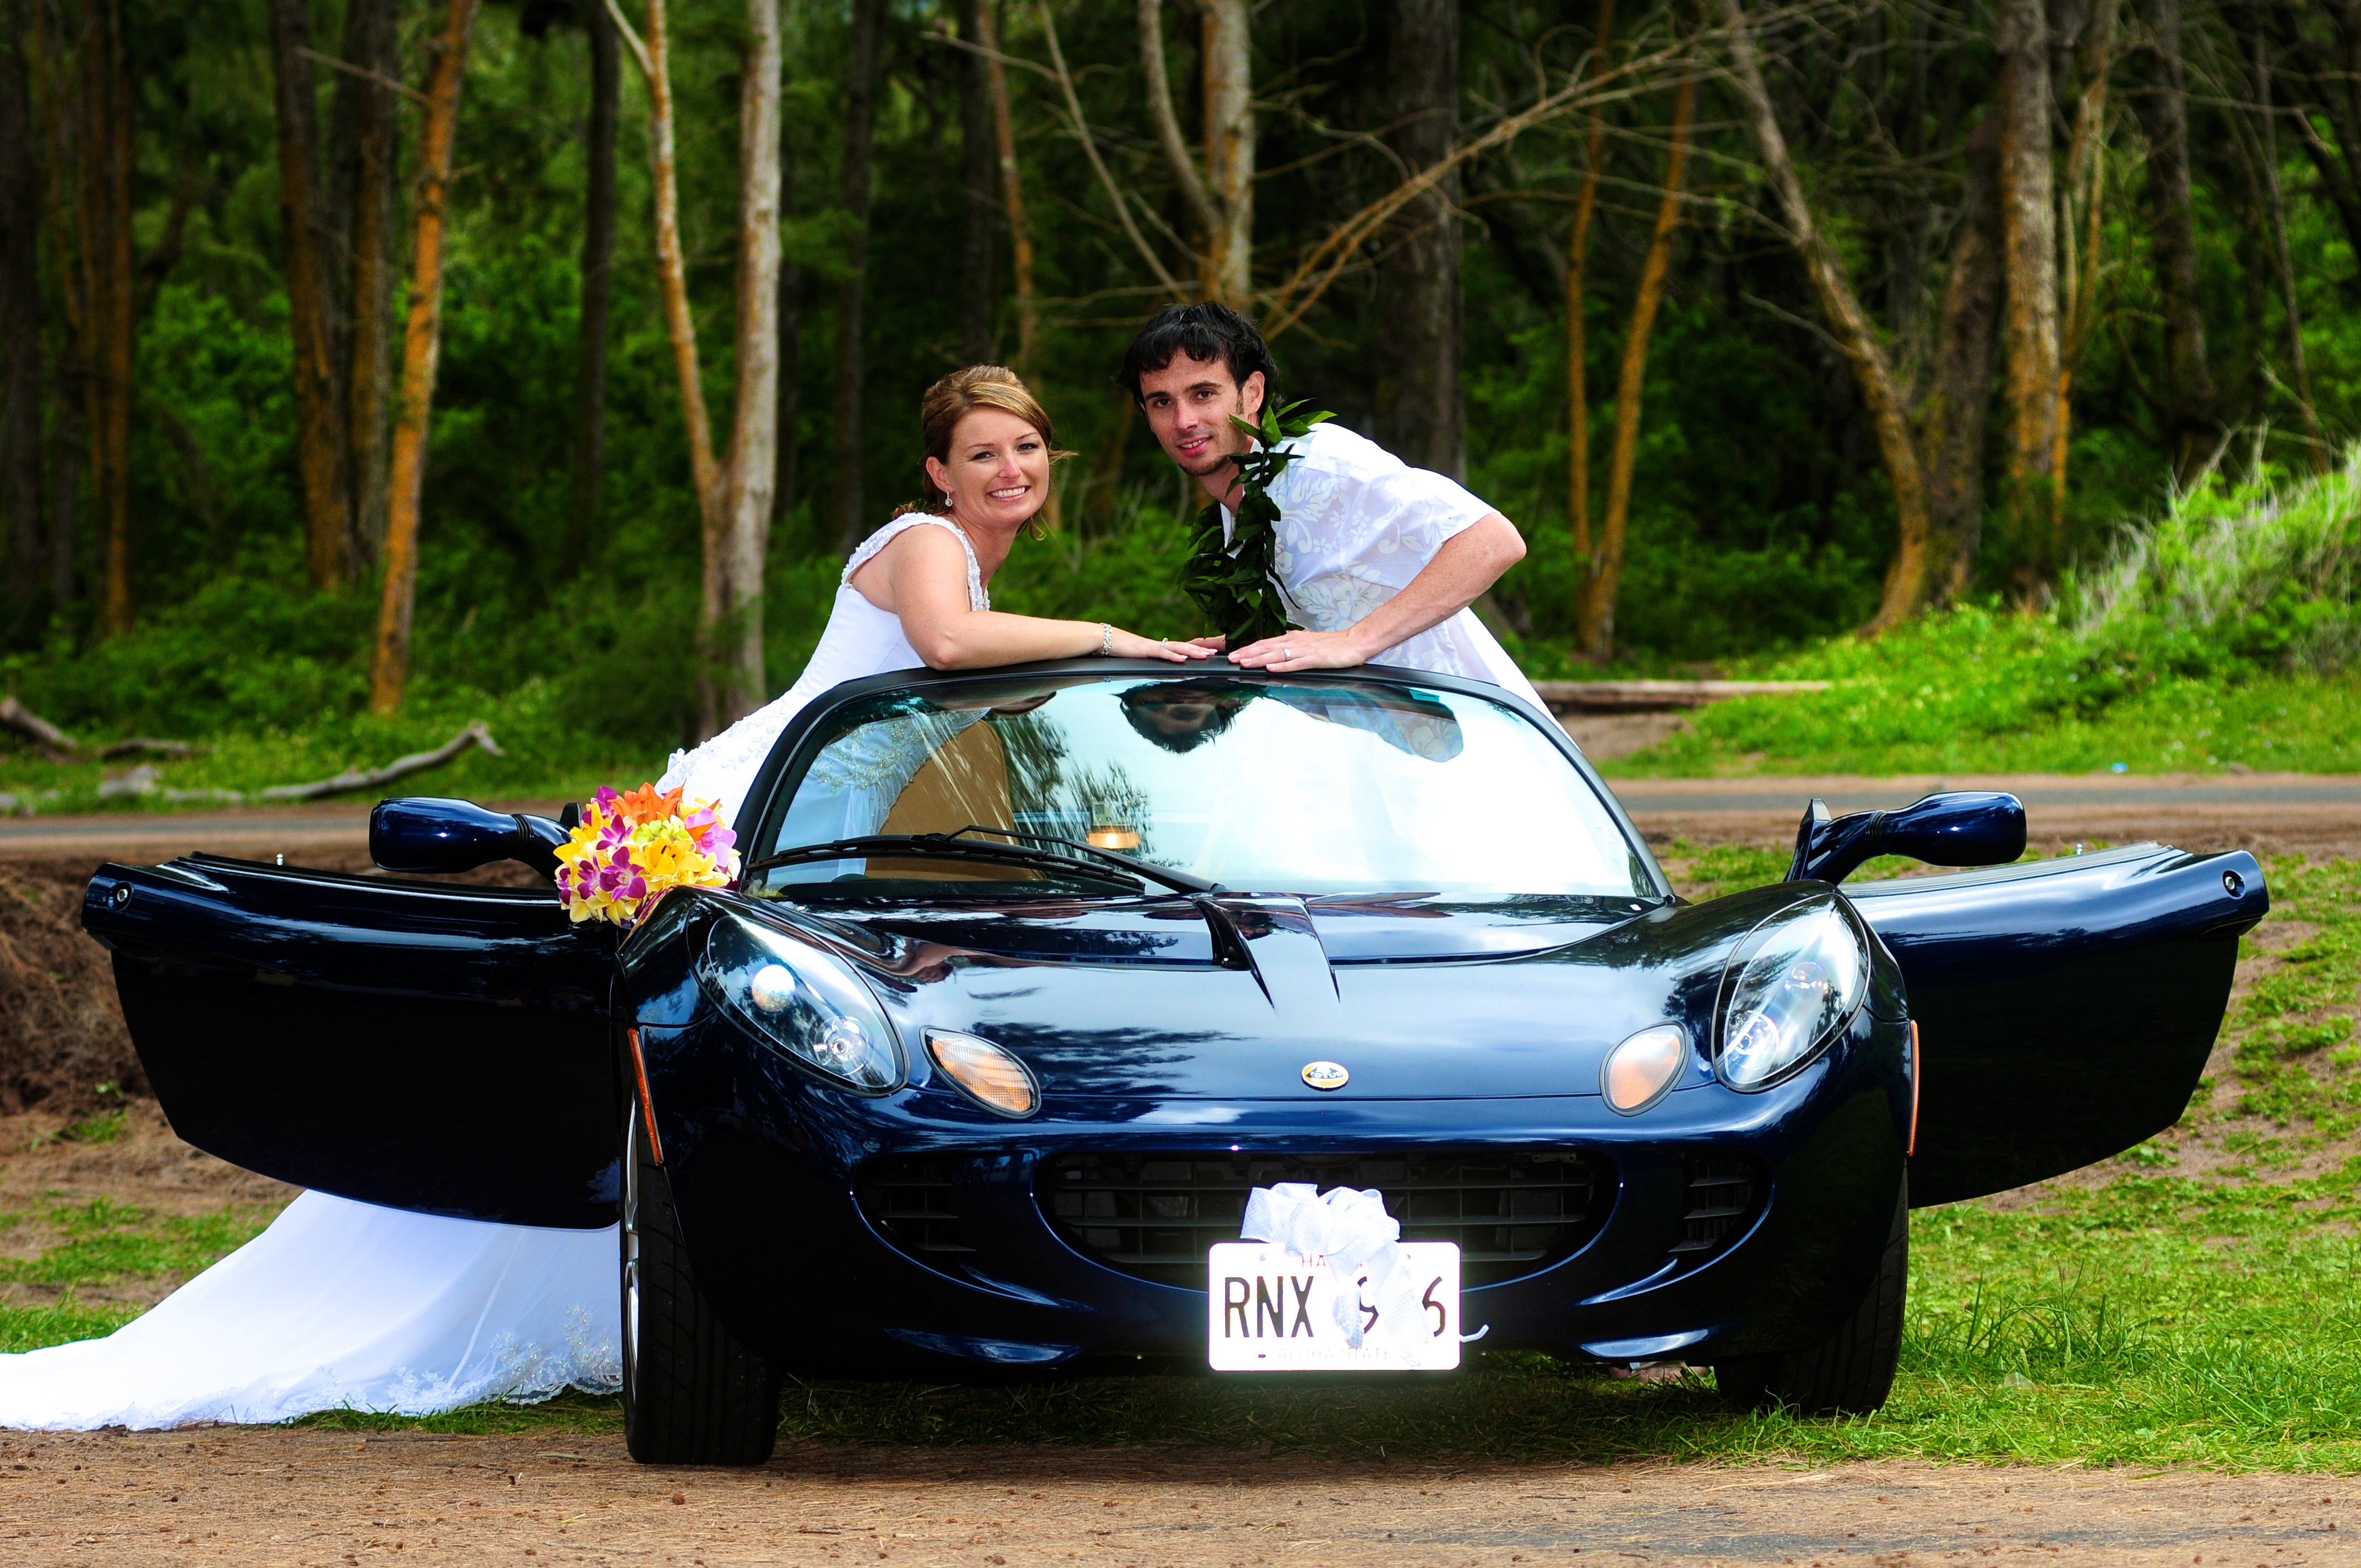 alohaislandweddings- Lotus car -29